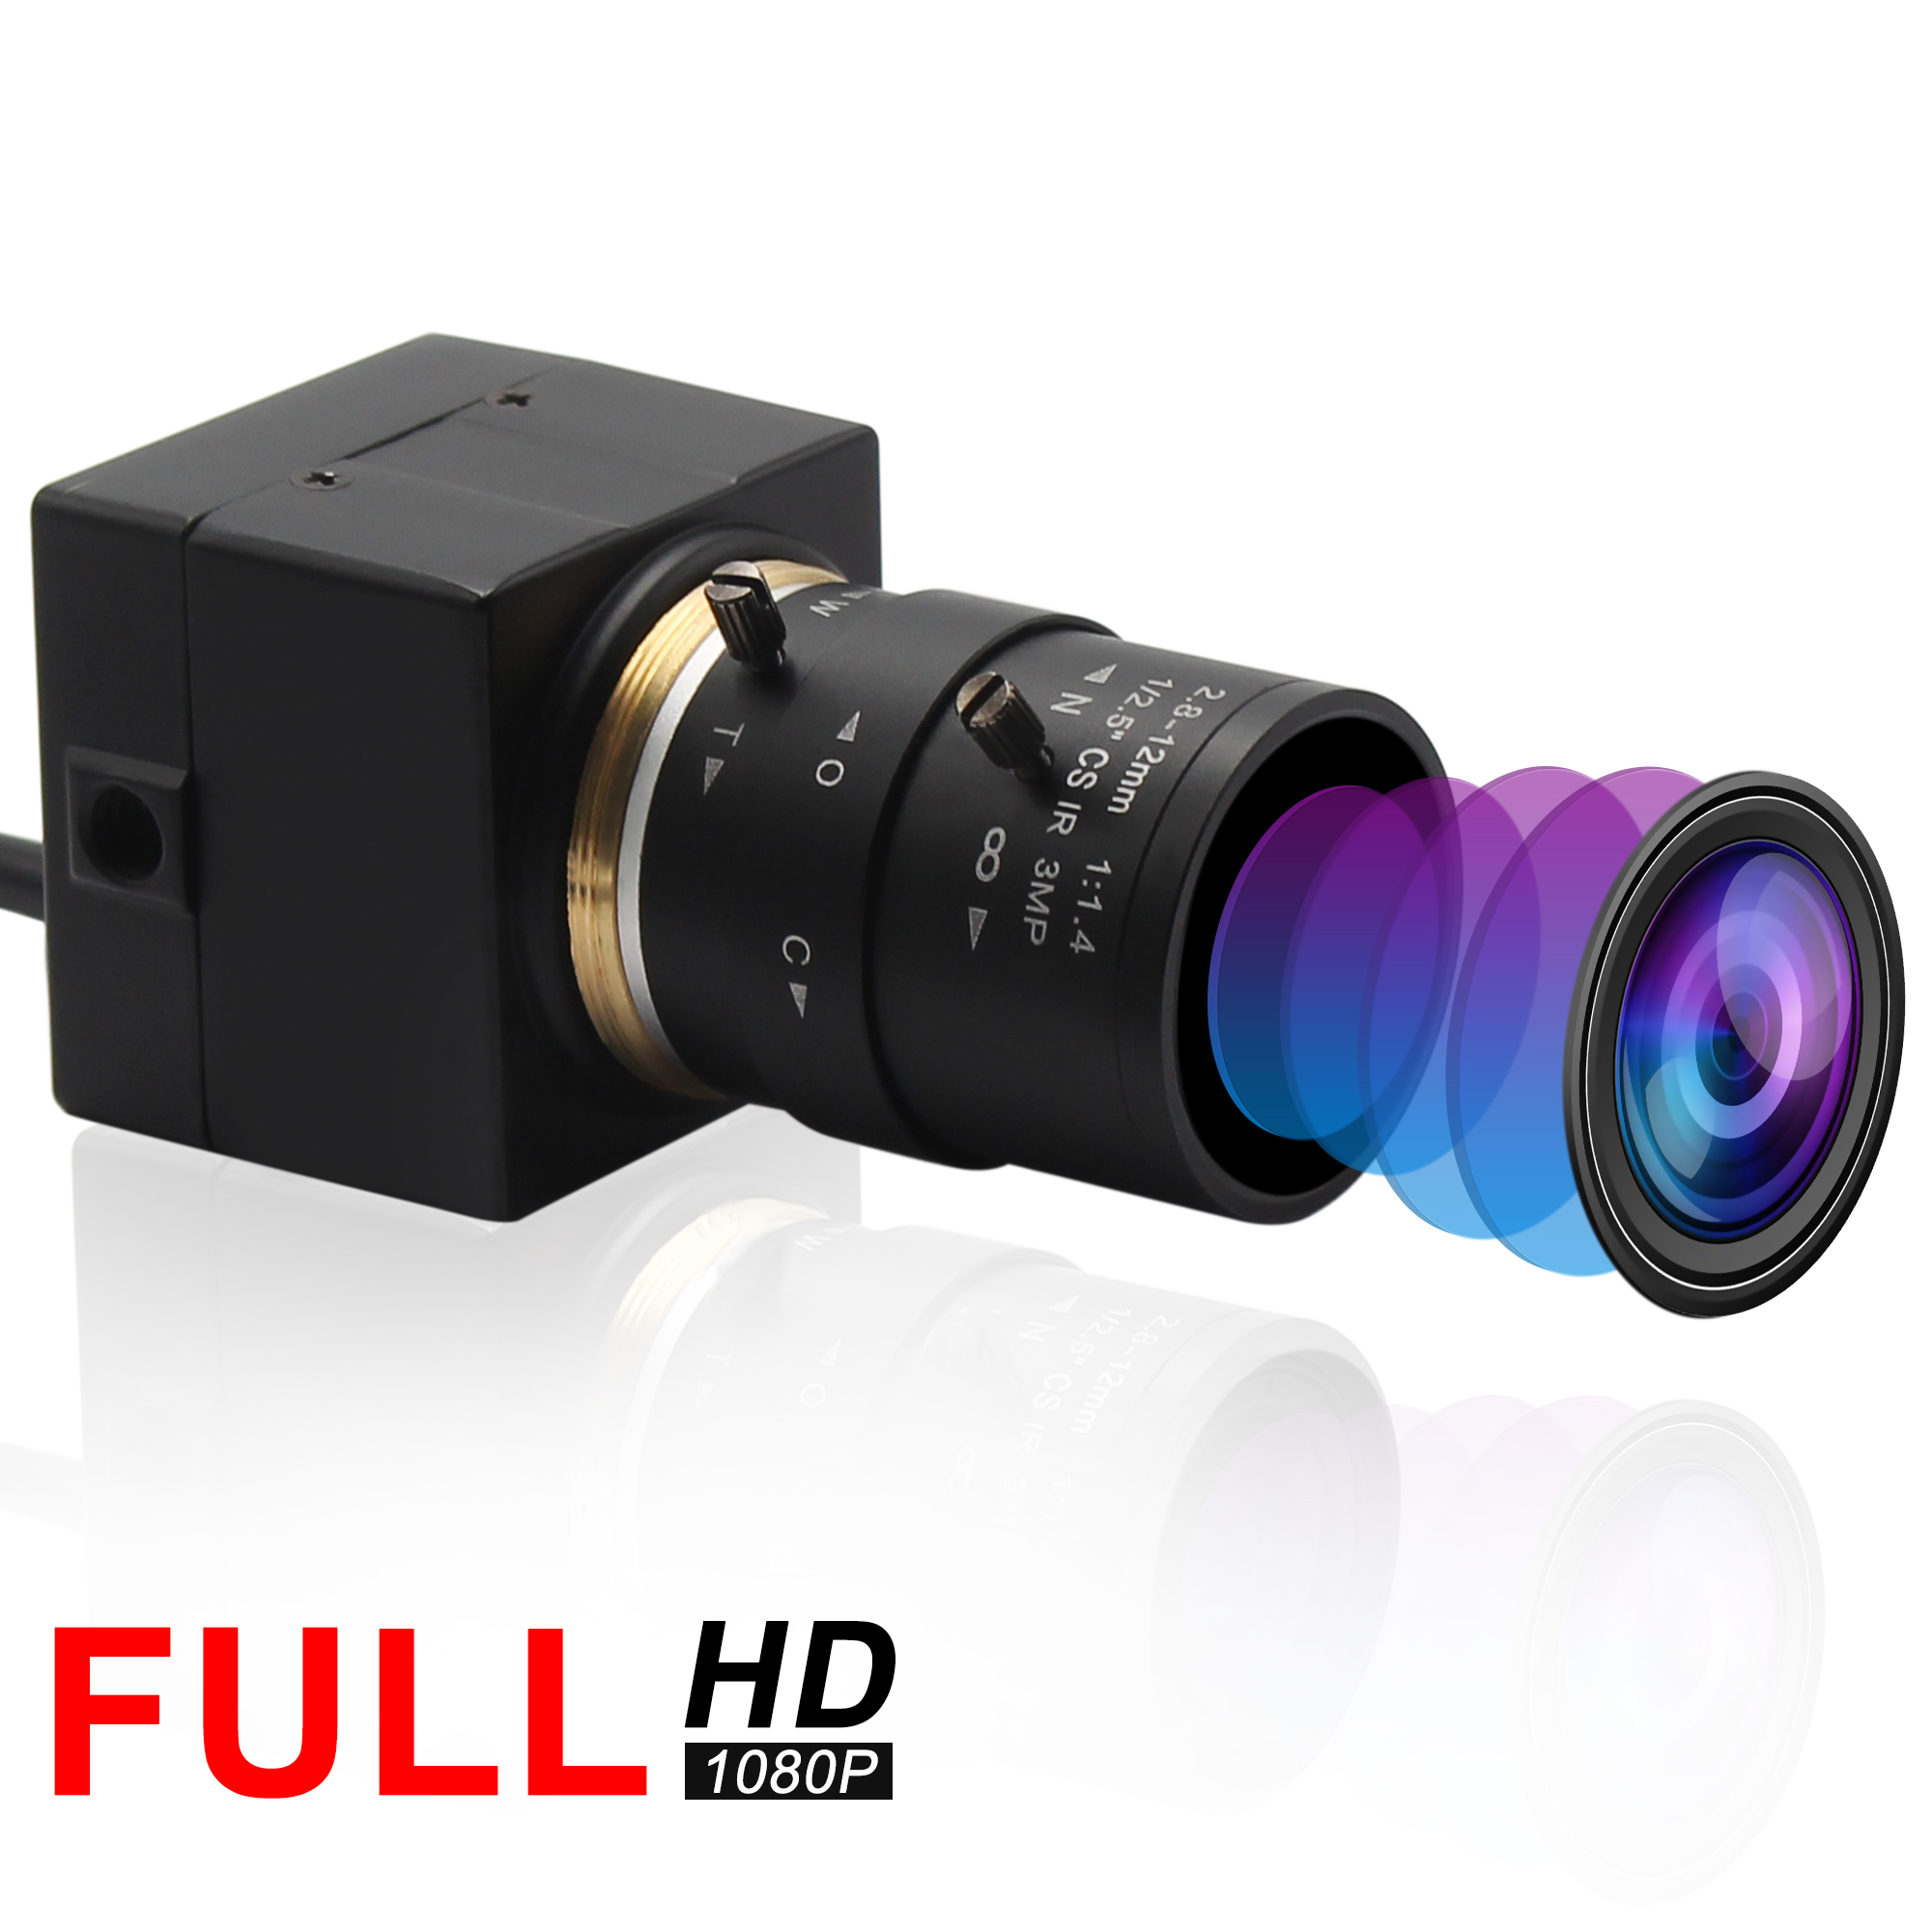 2 8 12mm varifocus lens 2Megapixel 1080P mini hd usb camera high speed USB 2 0